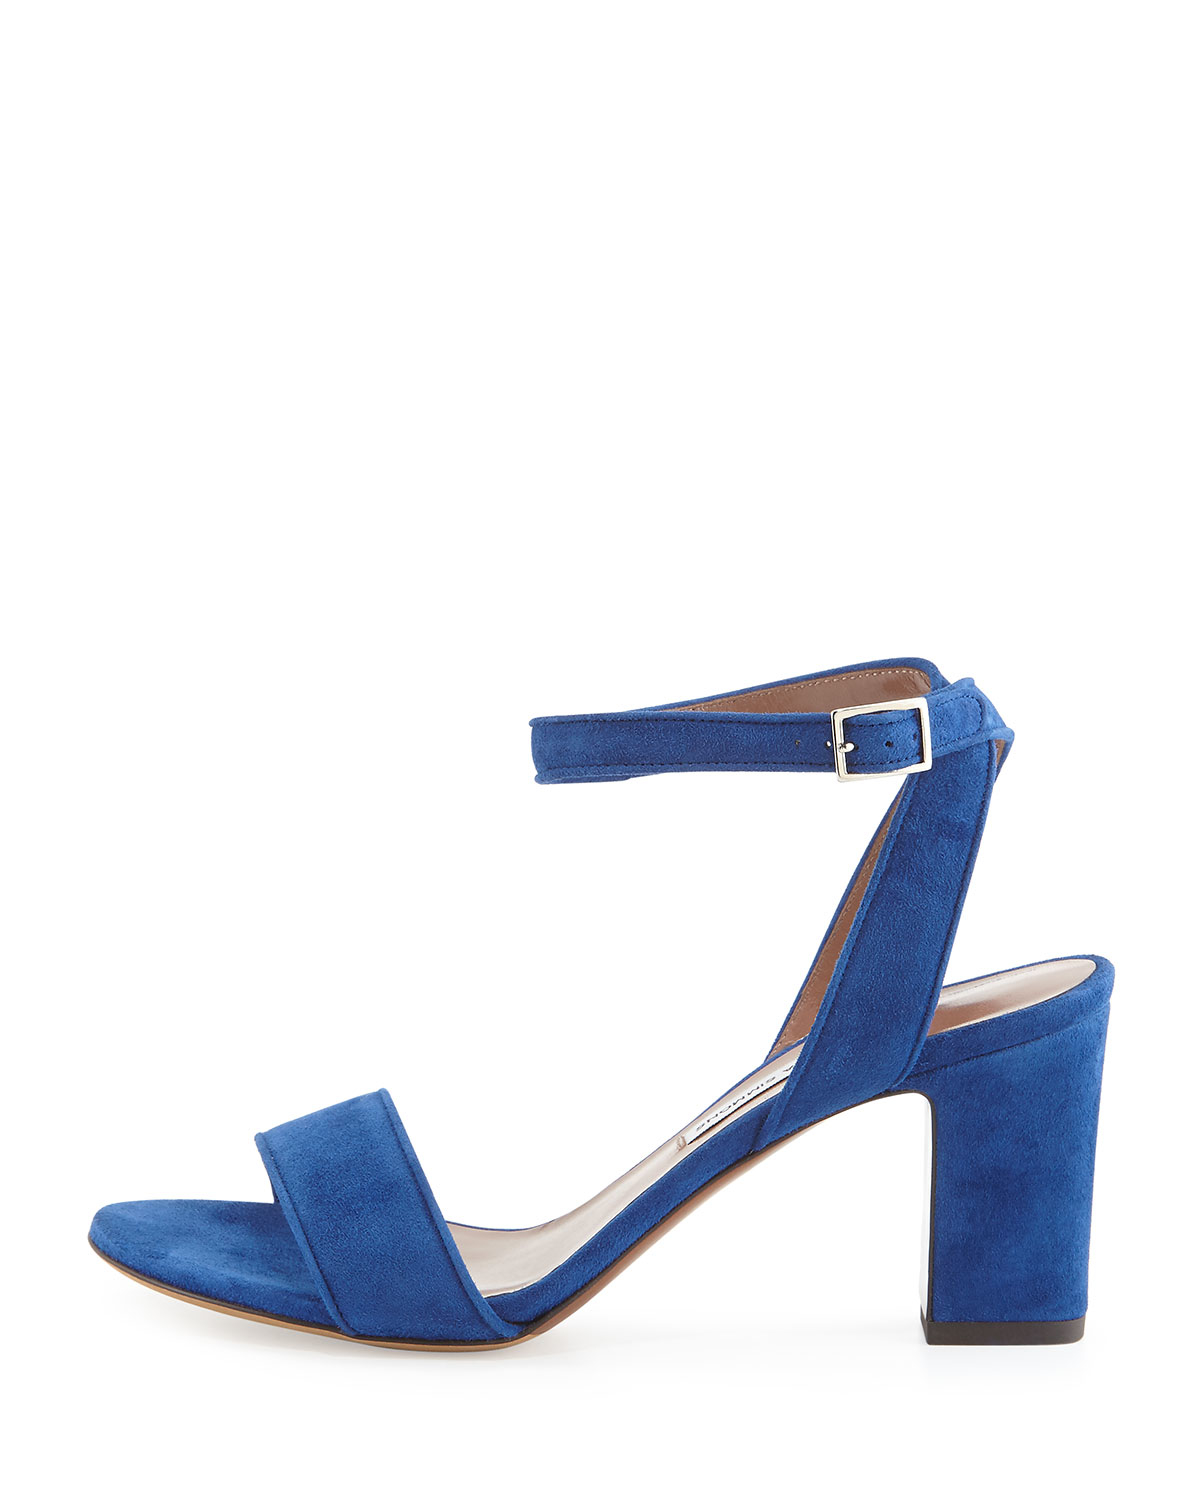 7b39dc740f0 Lyst - Tabitha Simmons Leticia Suede Sandals in Blue